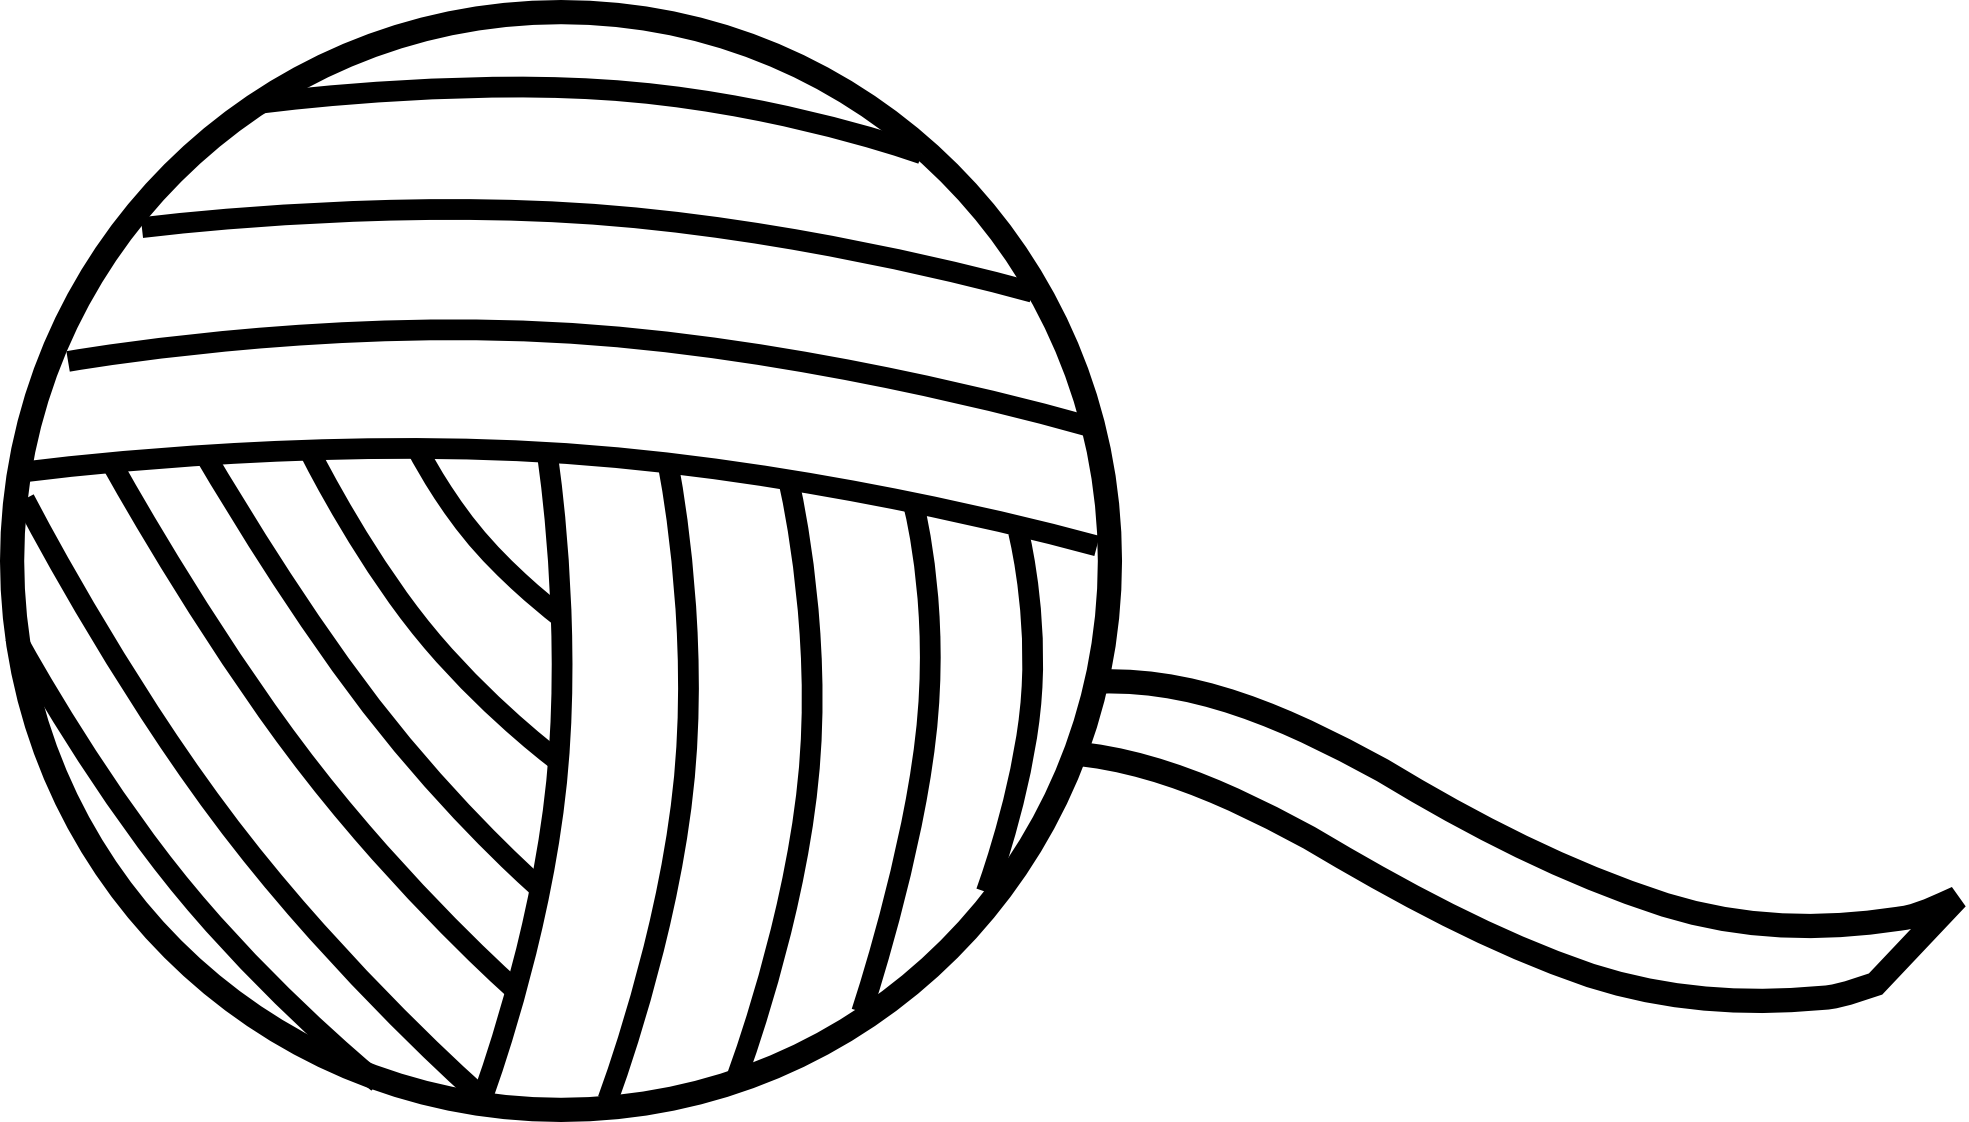 yarn clipart black and white - Yarn PNG Black And White